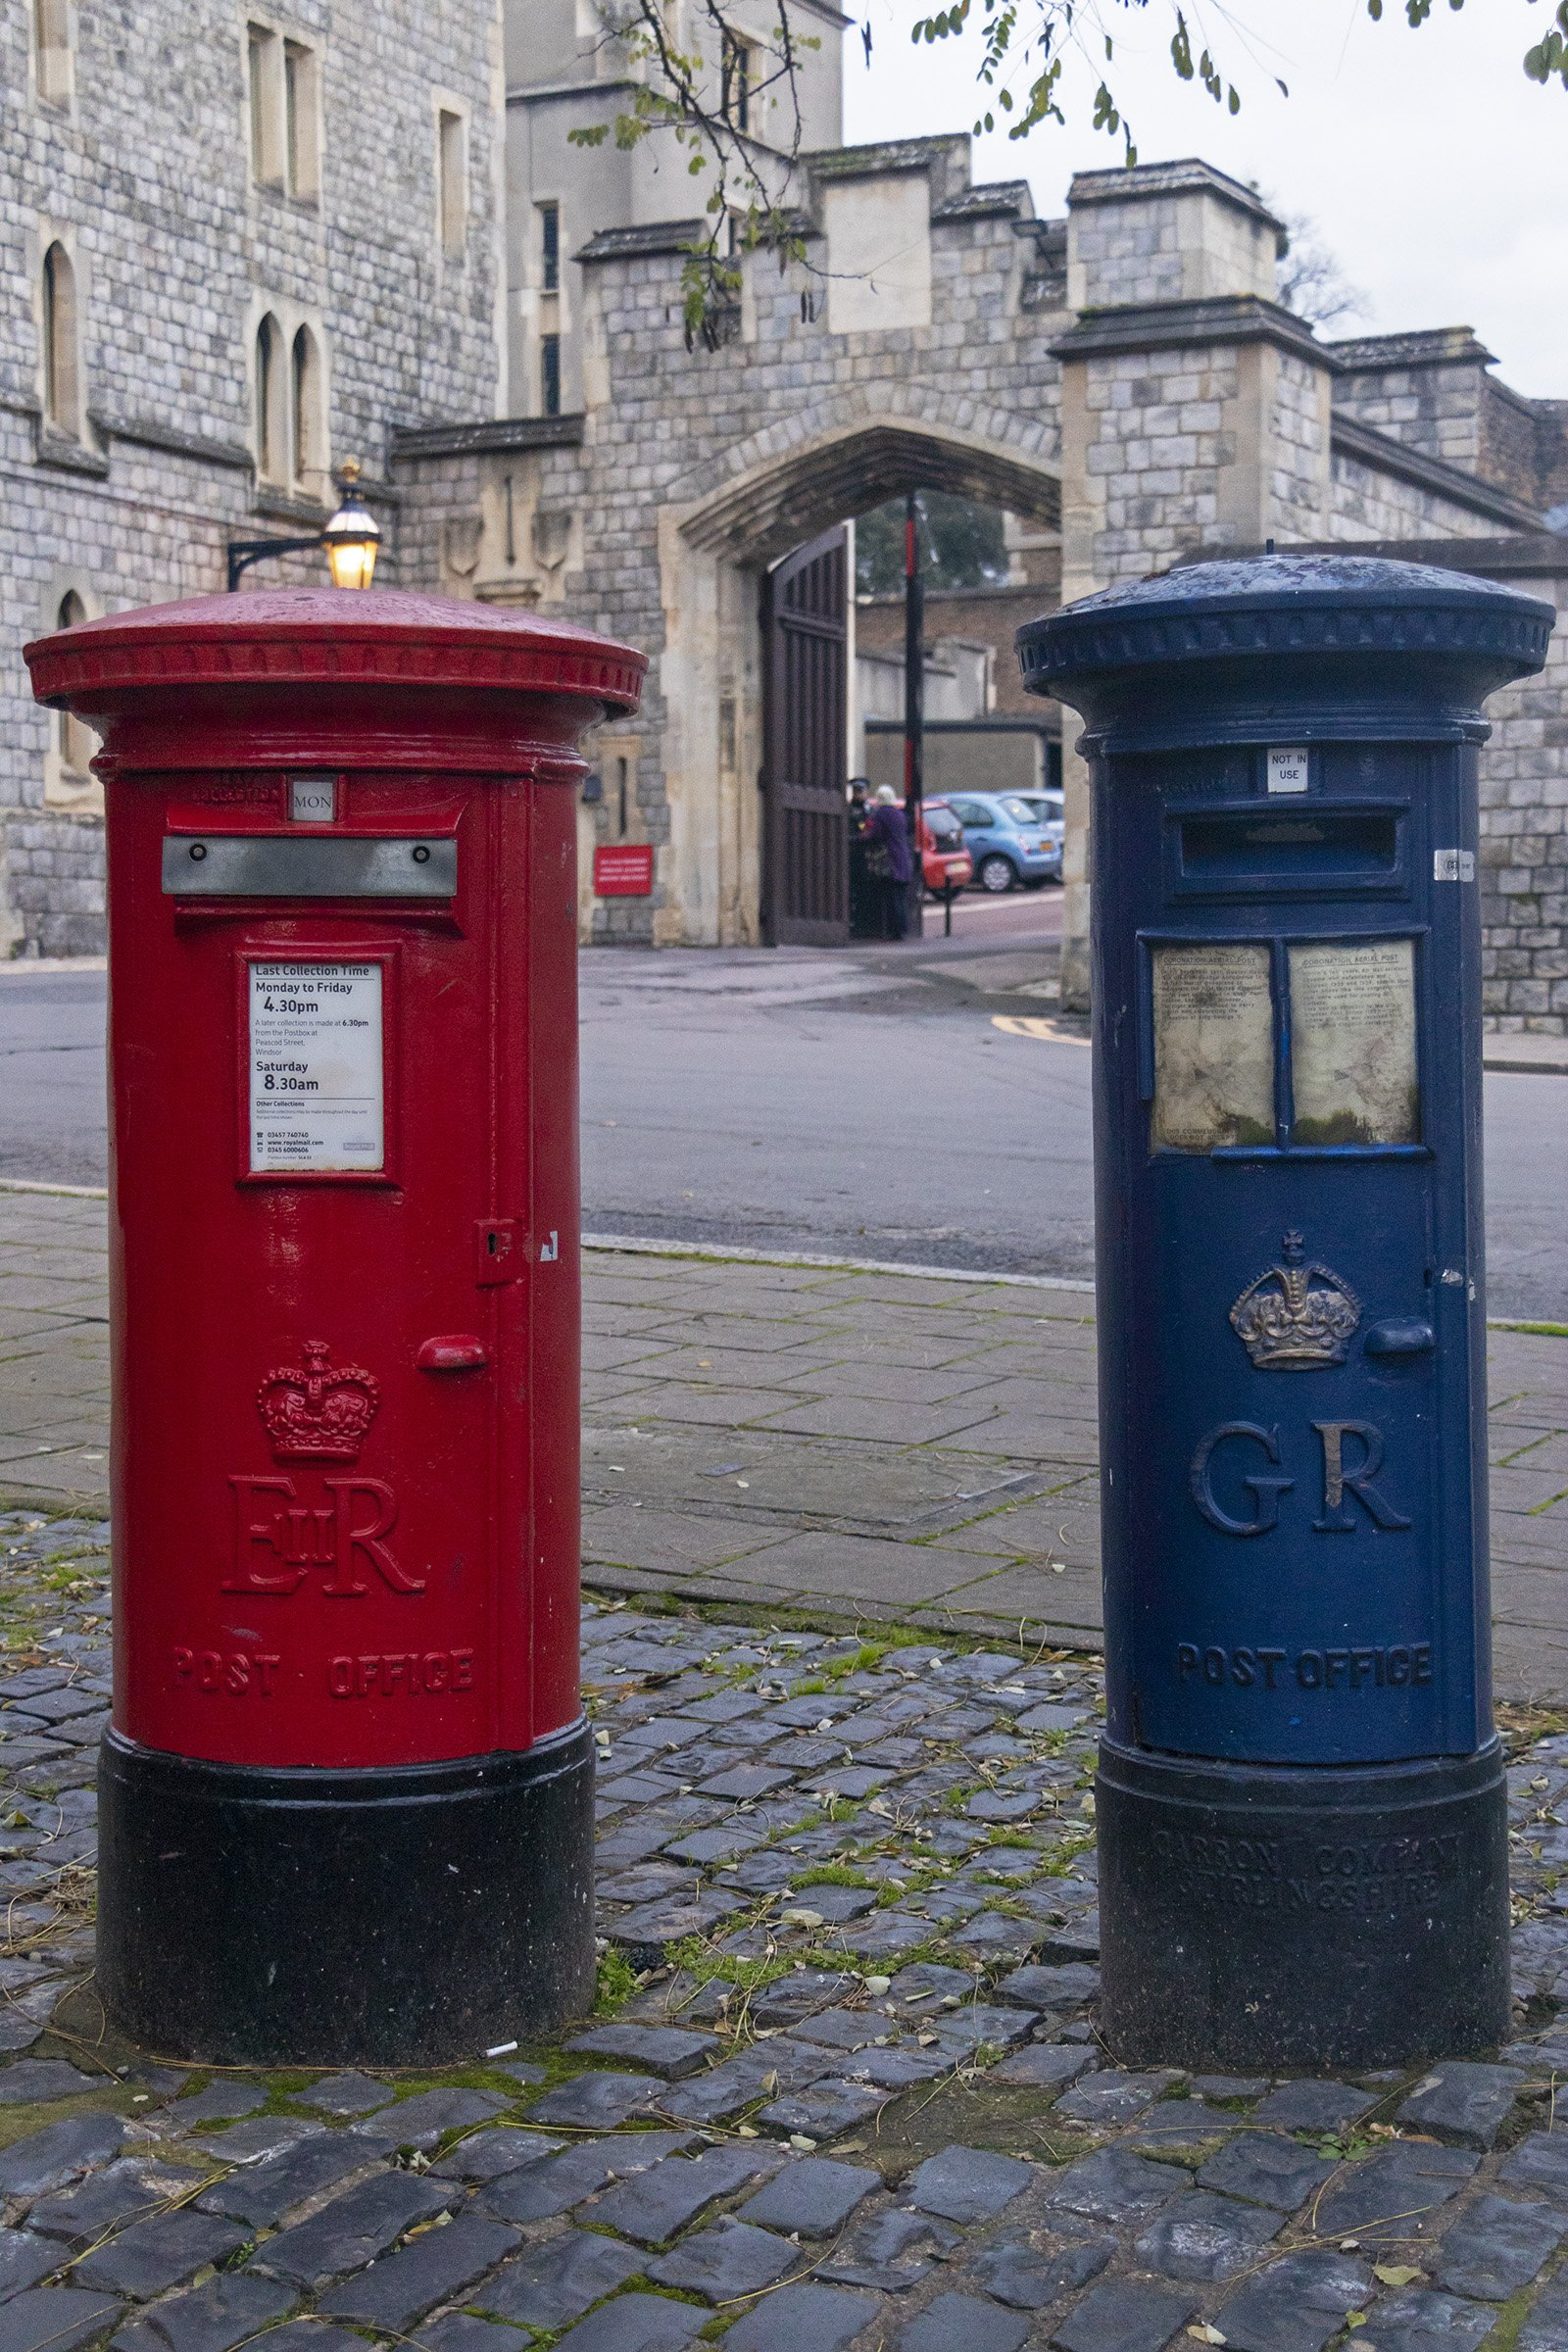 E2R and GR post box